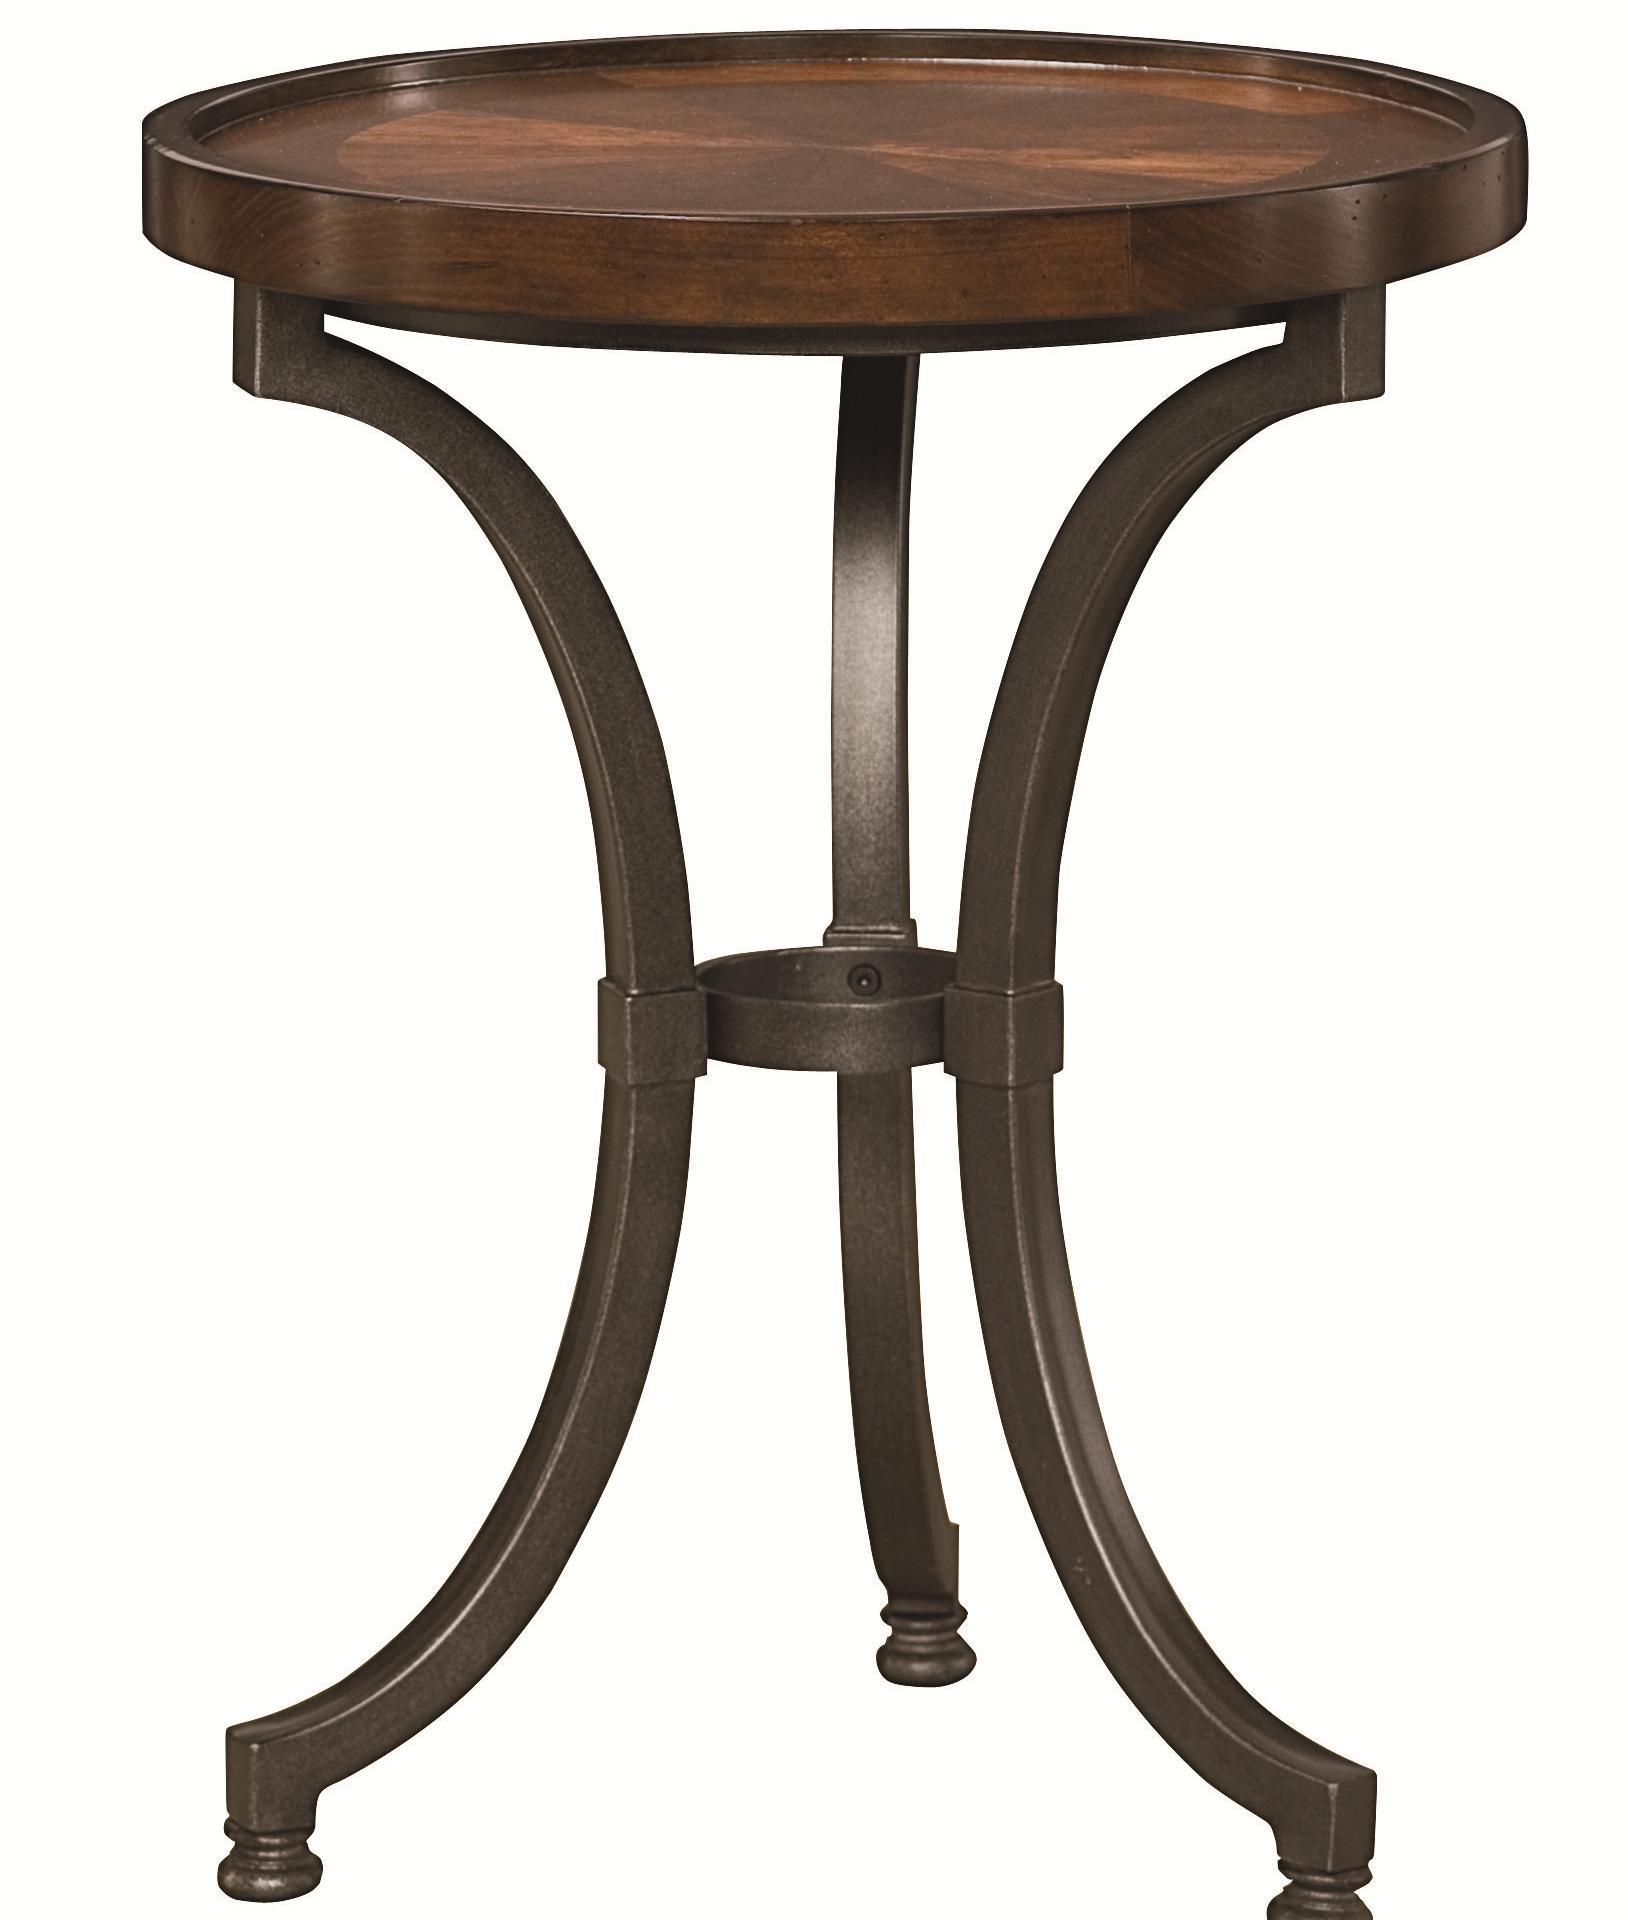 furniture small chairside tables for inspiring end table design narrow nesting broyhill side with drawer raymour and flanigan round baskets accent basket drawers armchairs spaces